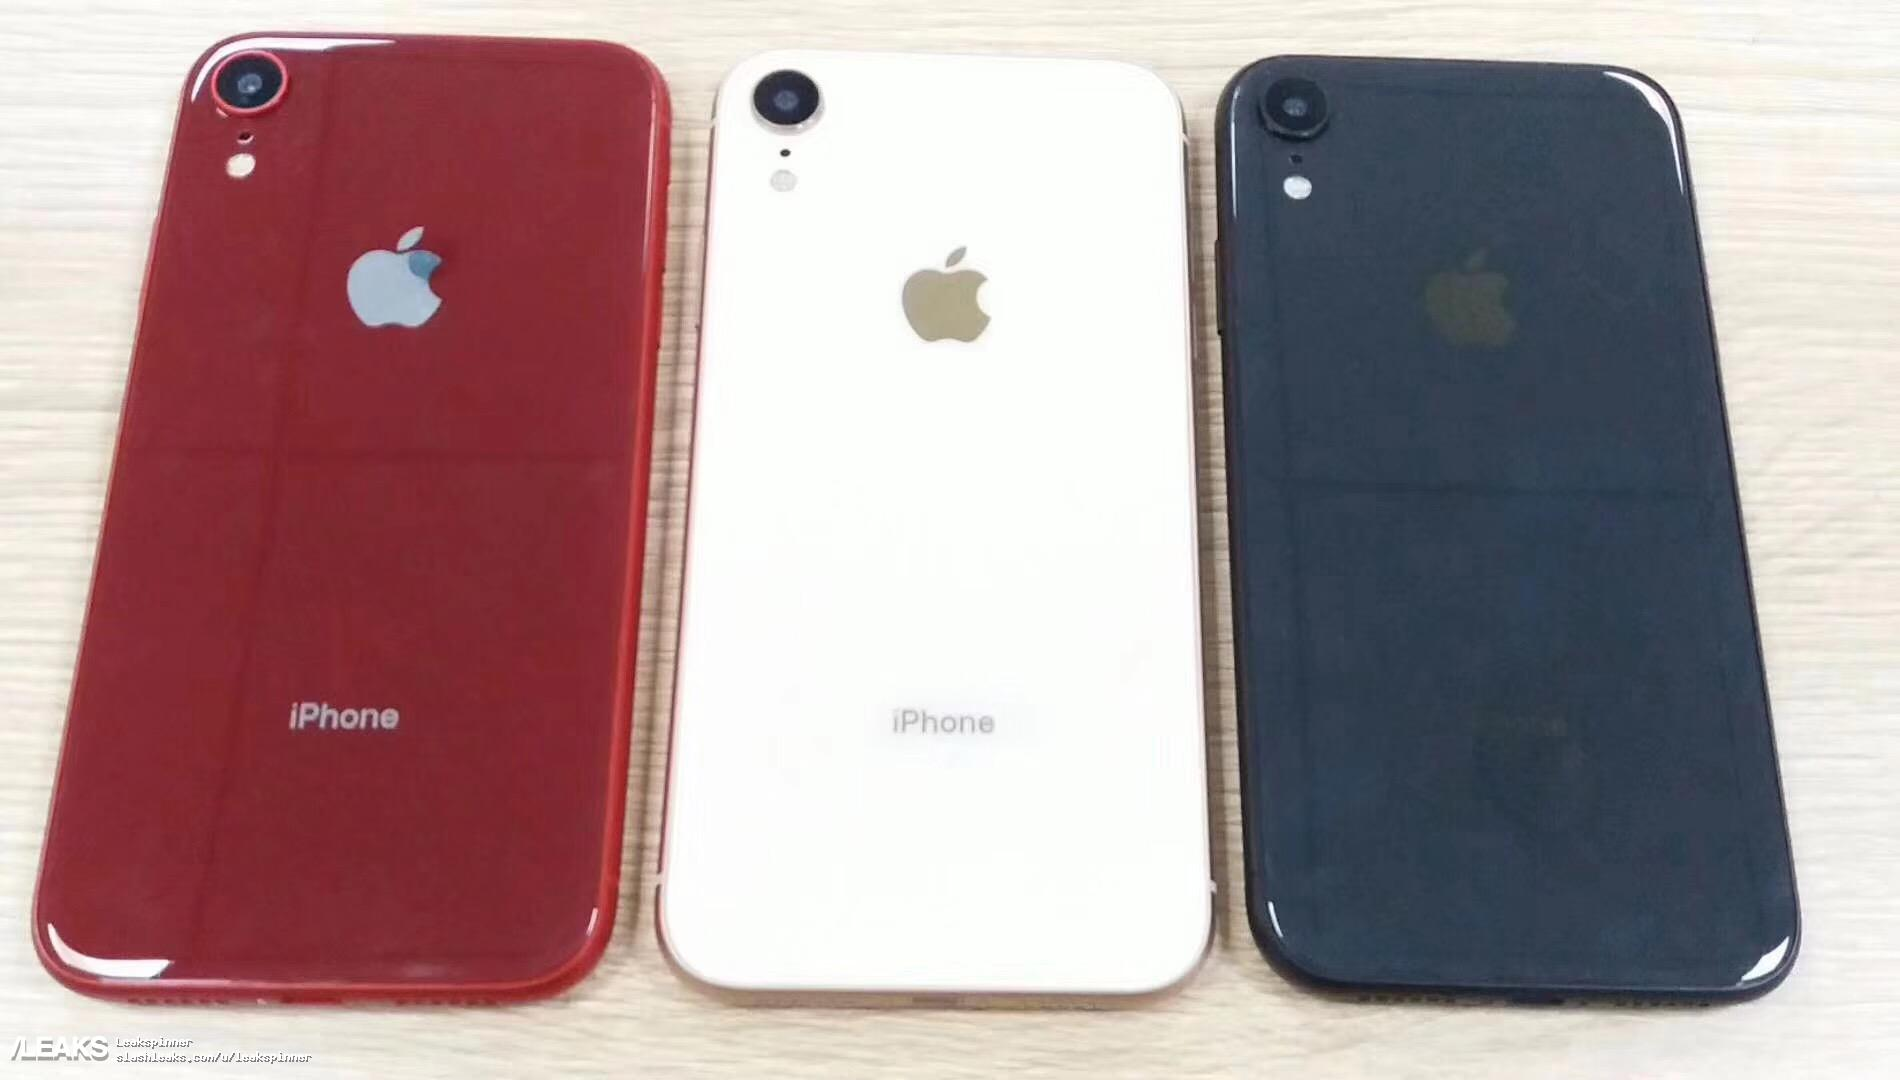 iPhone X, Apple iPhone 7 Plus, iPhone SE, Apple iPhone 8 Plus, Apple, , Color, iOS 9, Blue, Subscriber identity module, iPhone, mobile phone, product, gadget, communication device, product, electronic device, portable communications device, smartphone, technology, feature phone